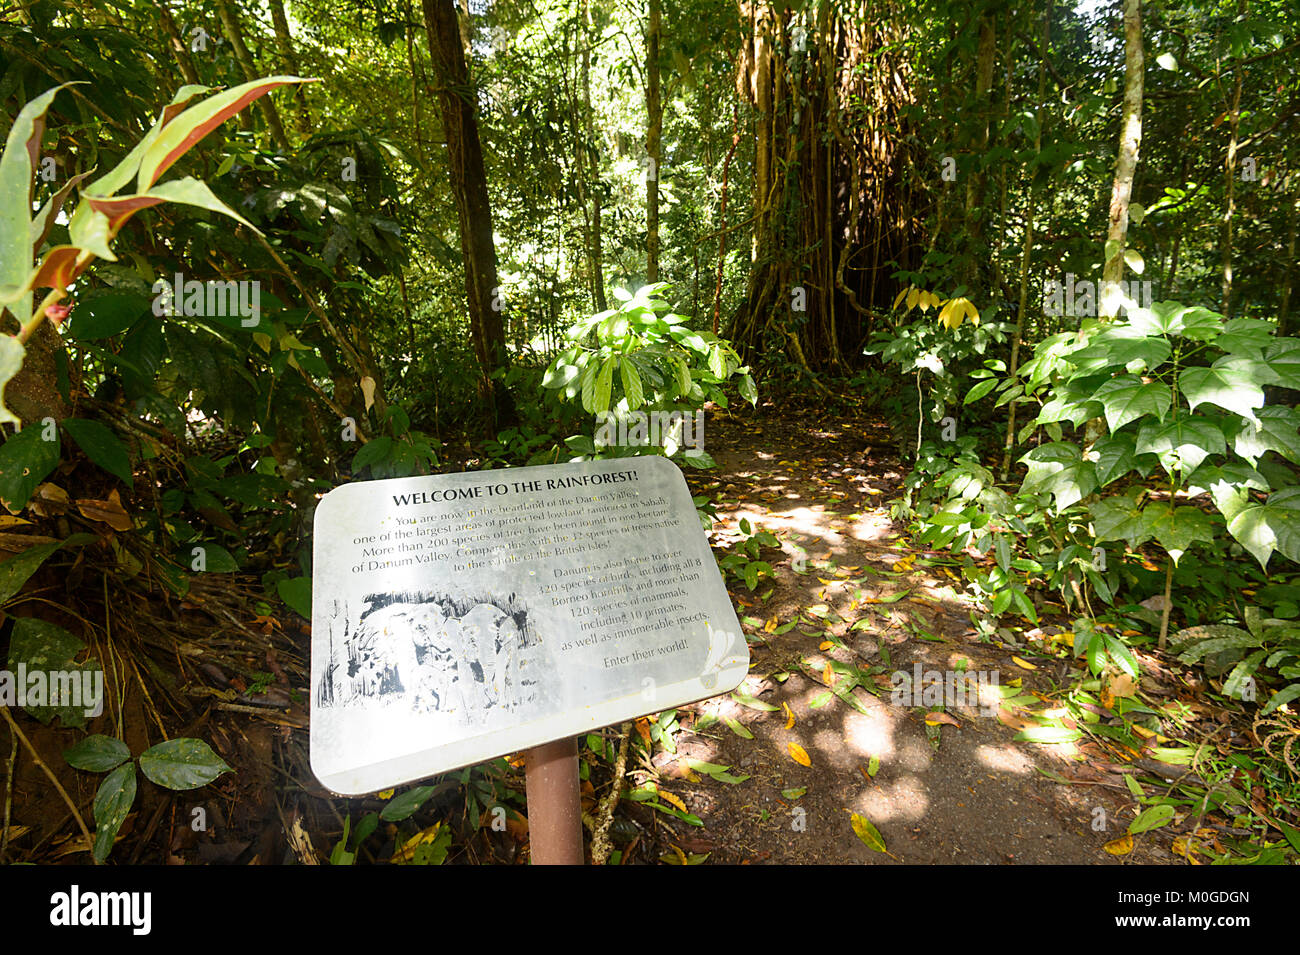 welcome-to-the-rainforest-sign-danum-val